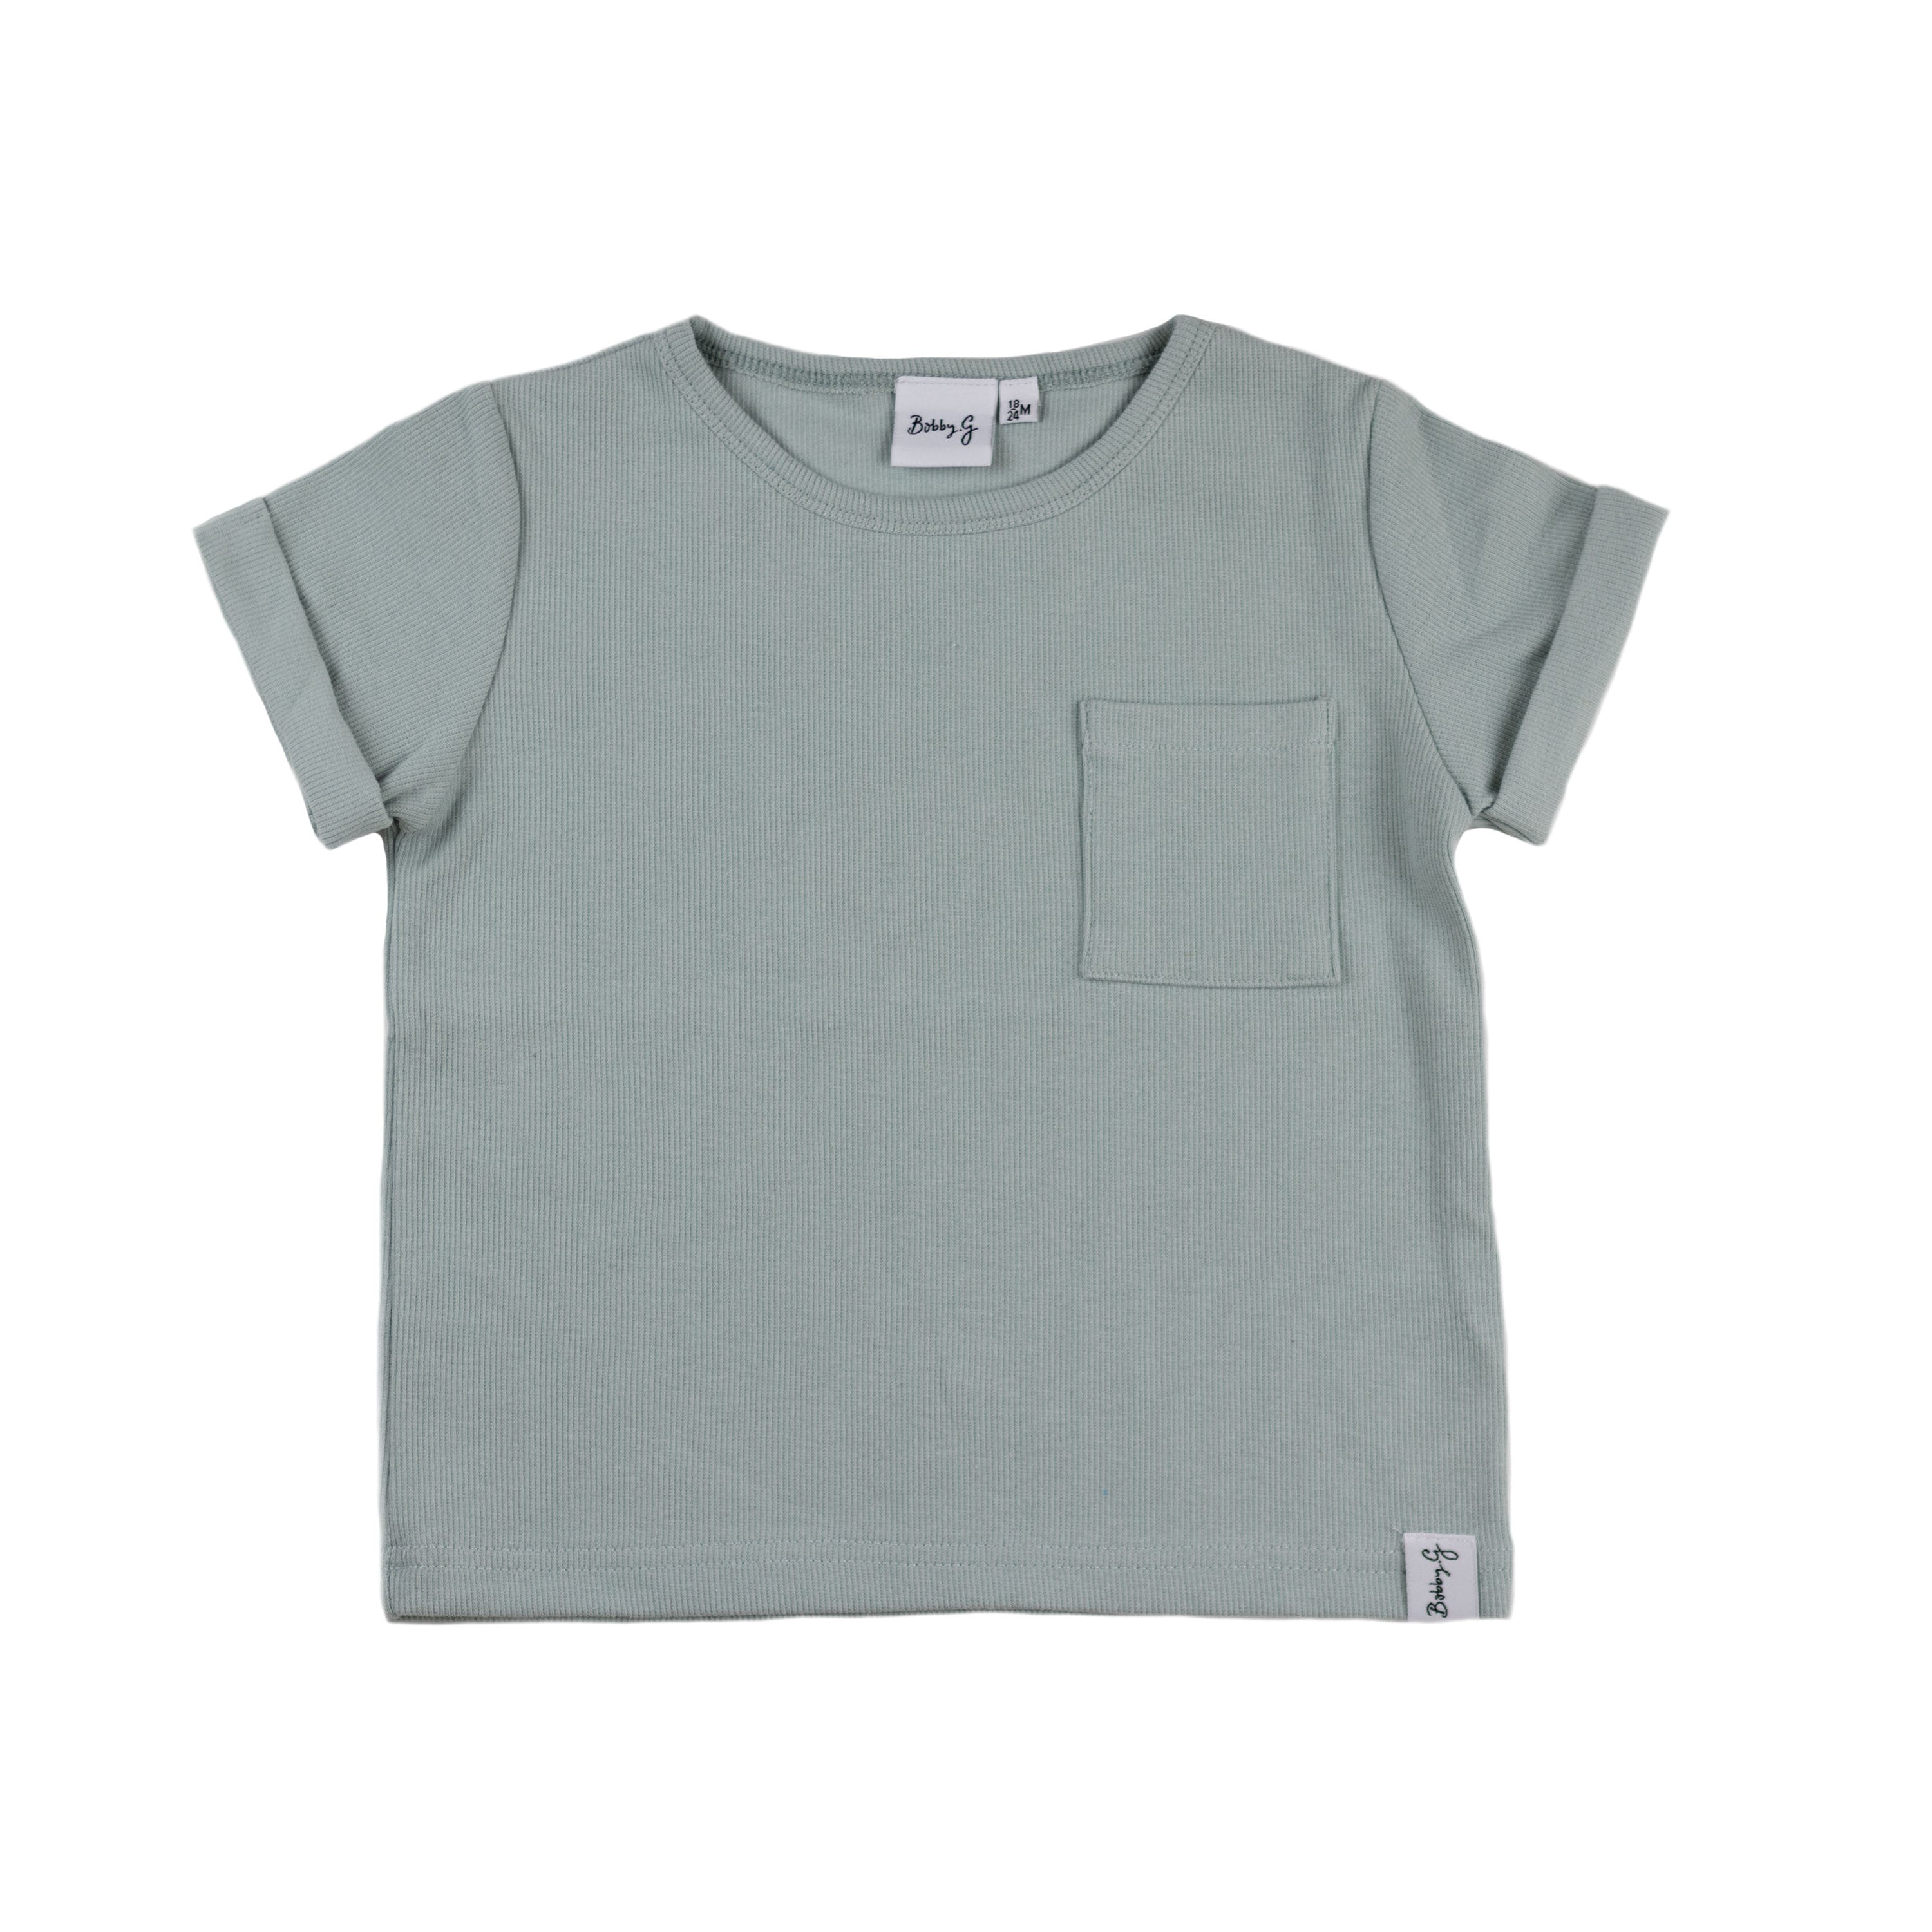 Ribbed Box Tee - Powder Blue - AJ&Henny